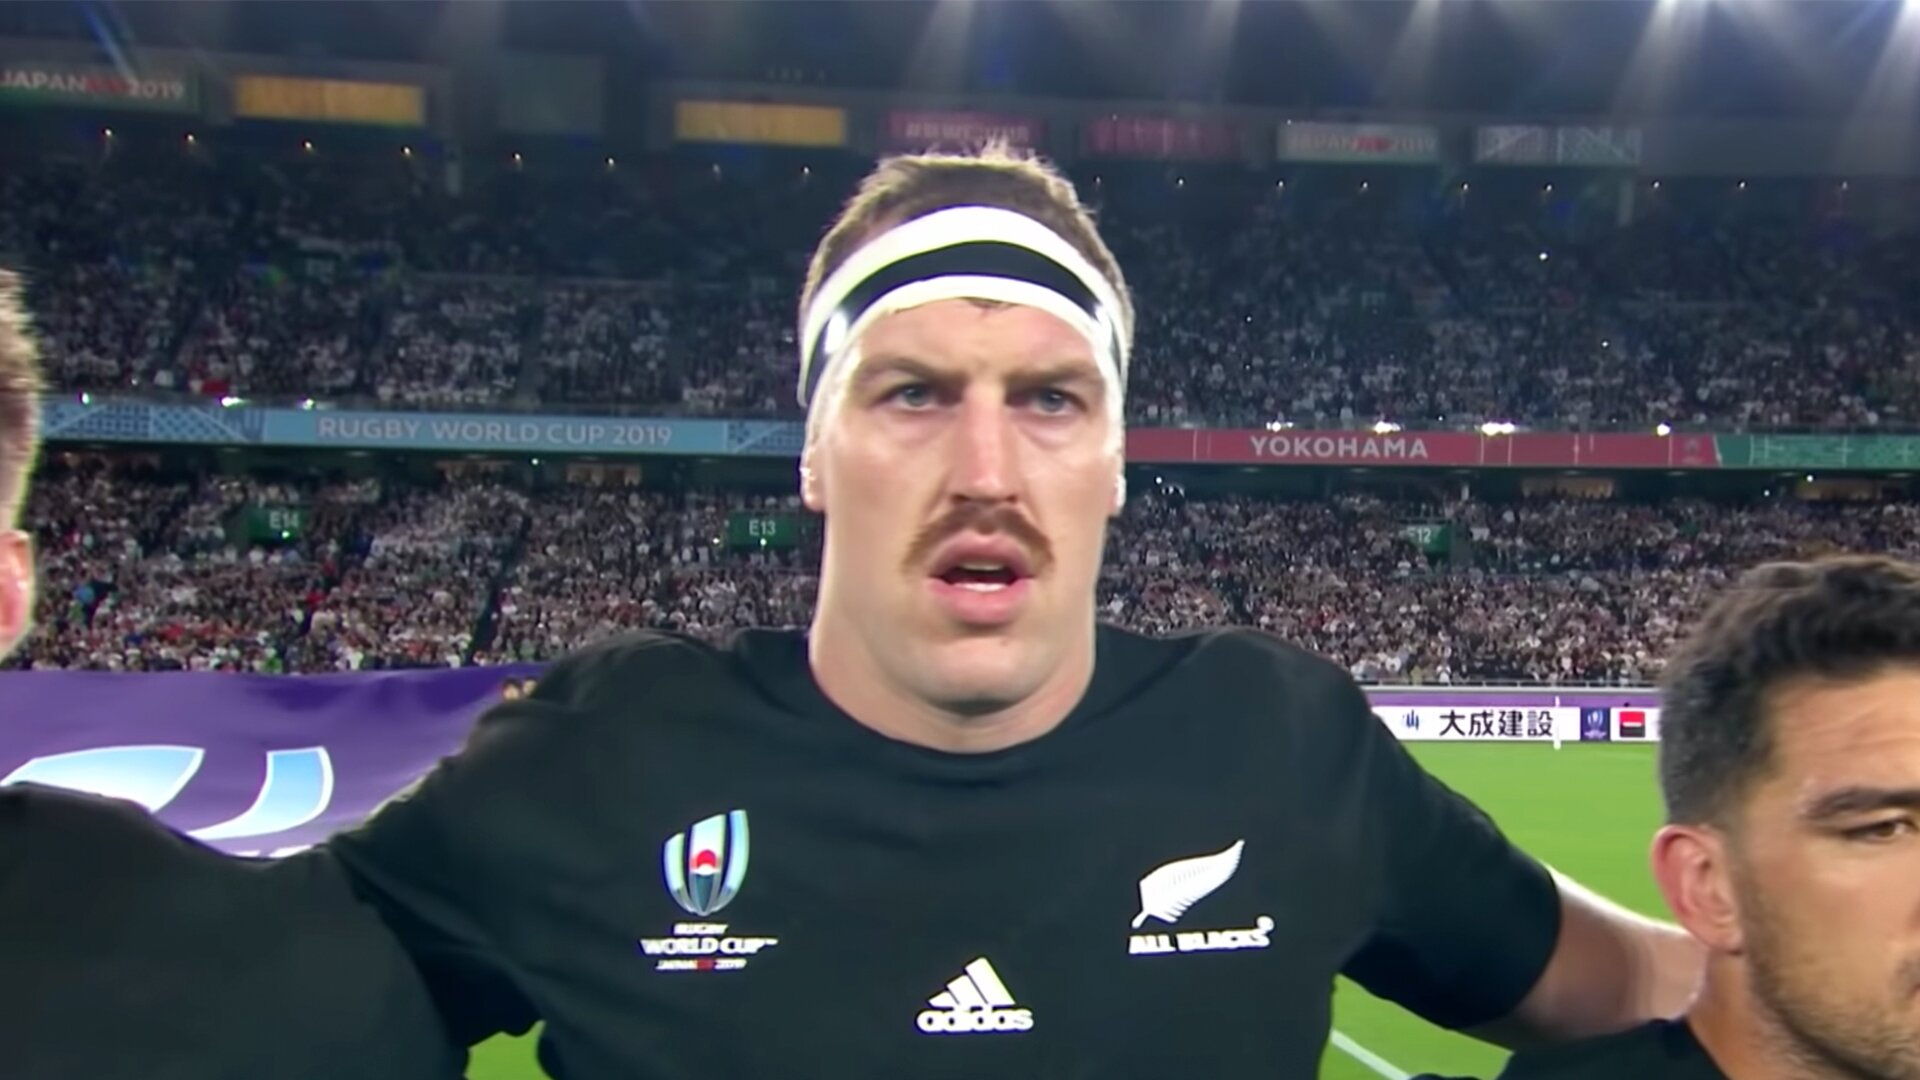 Rugby fans confused as bizarre private messages are sent from account of All Black star Brodie Retallick